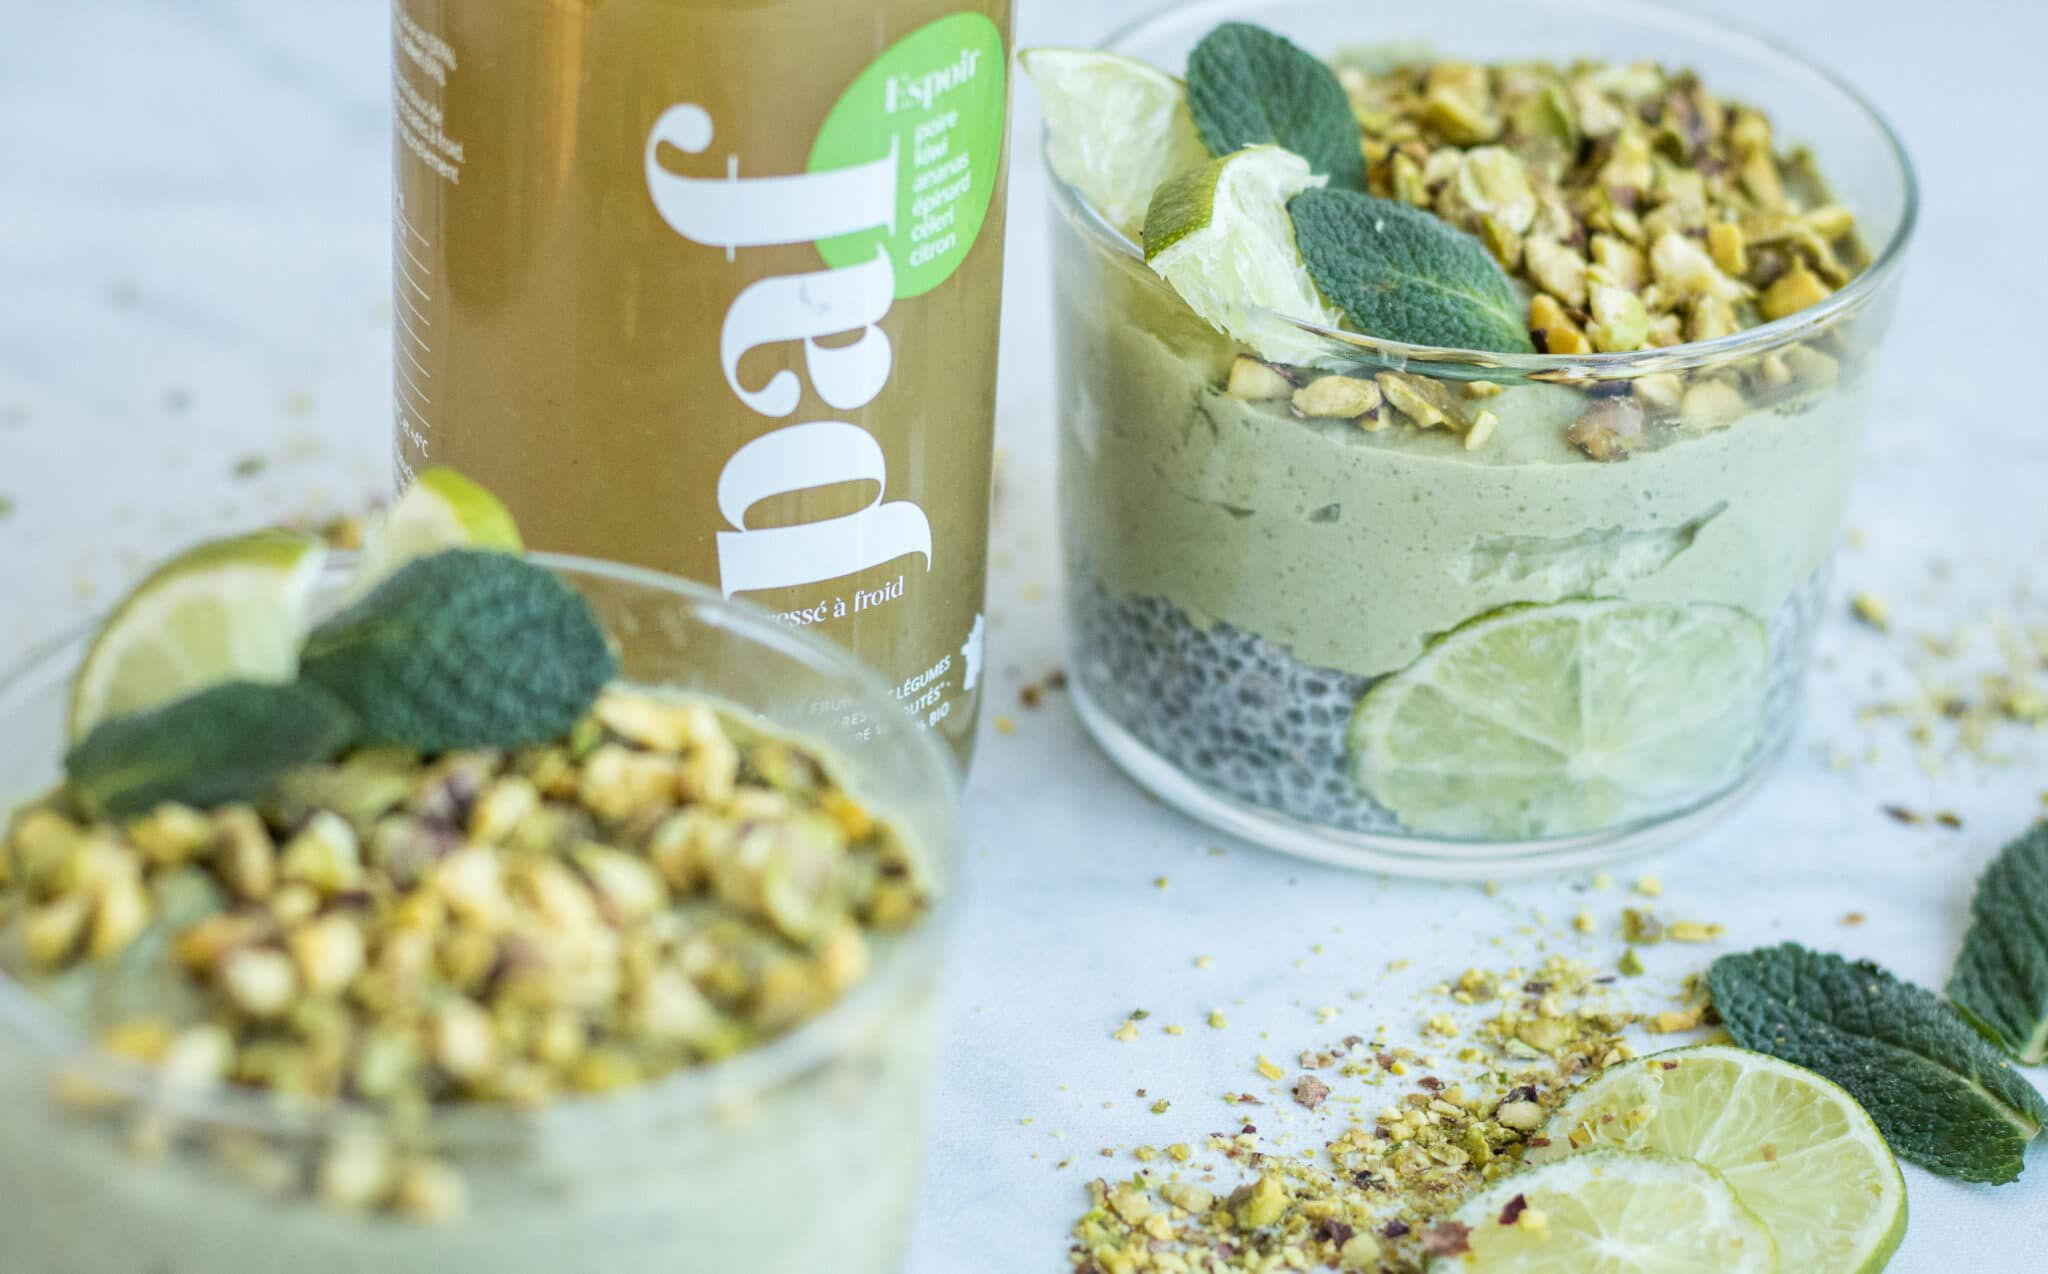 Recette healthy matcha by PAF